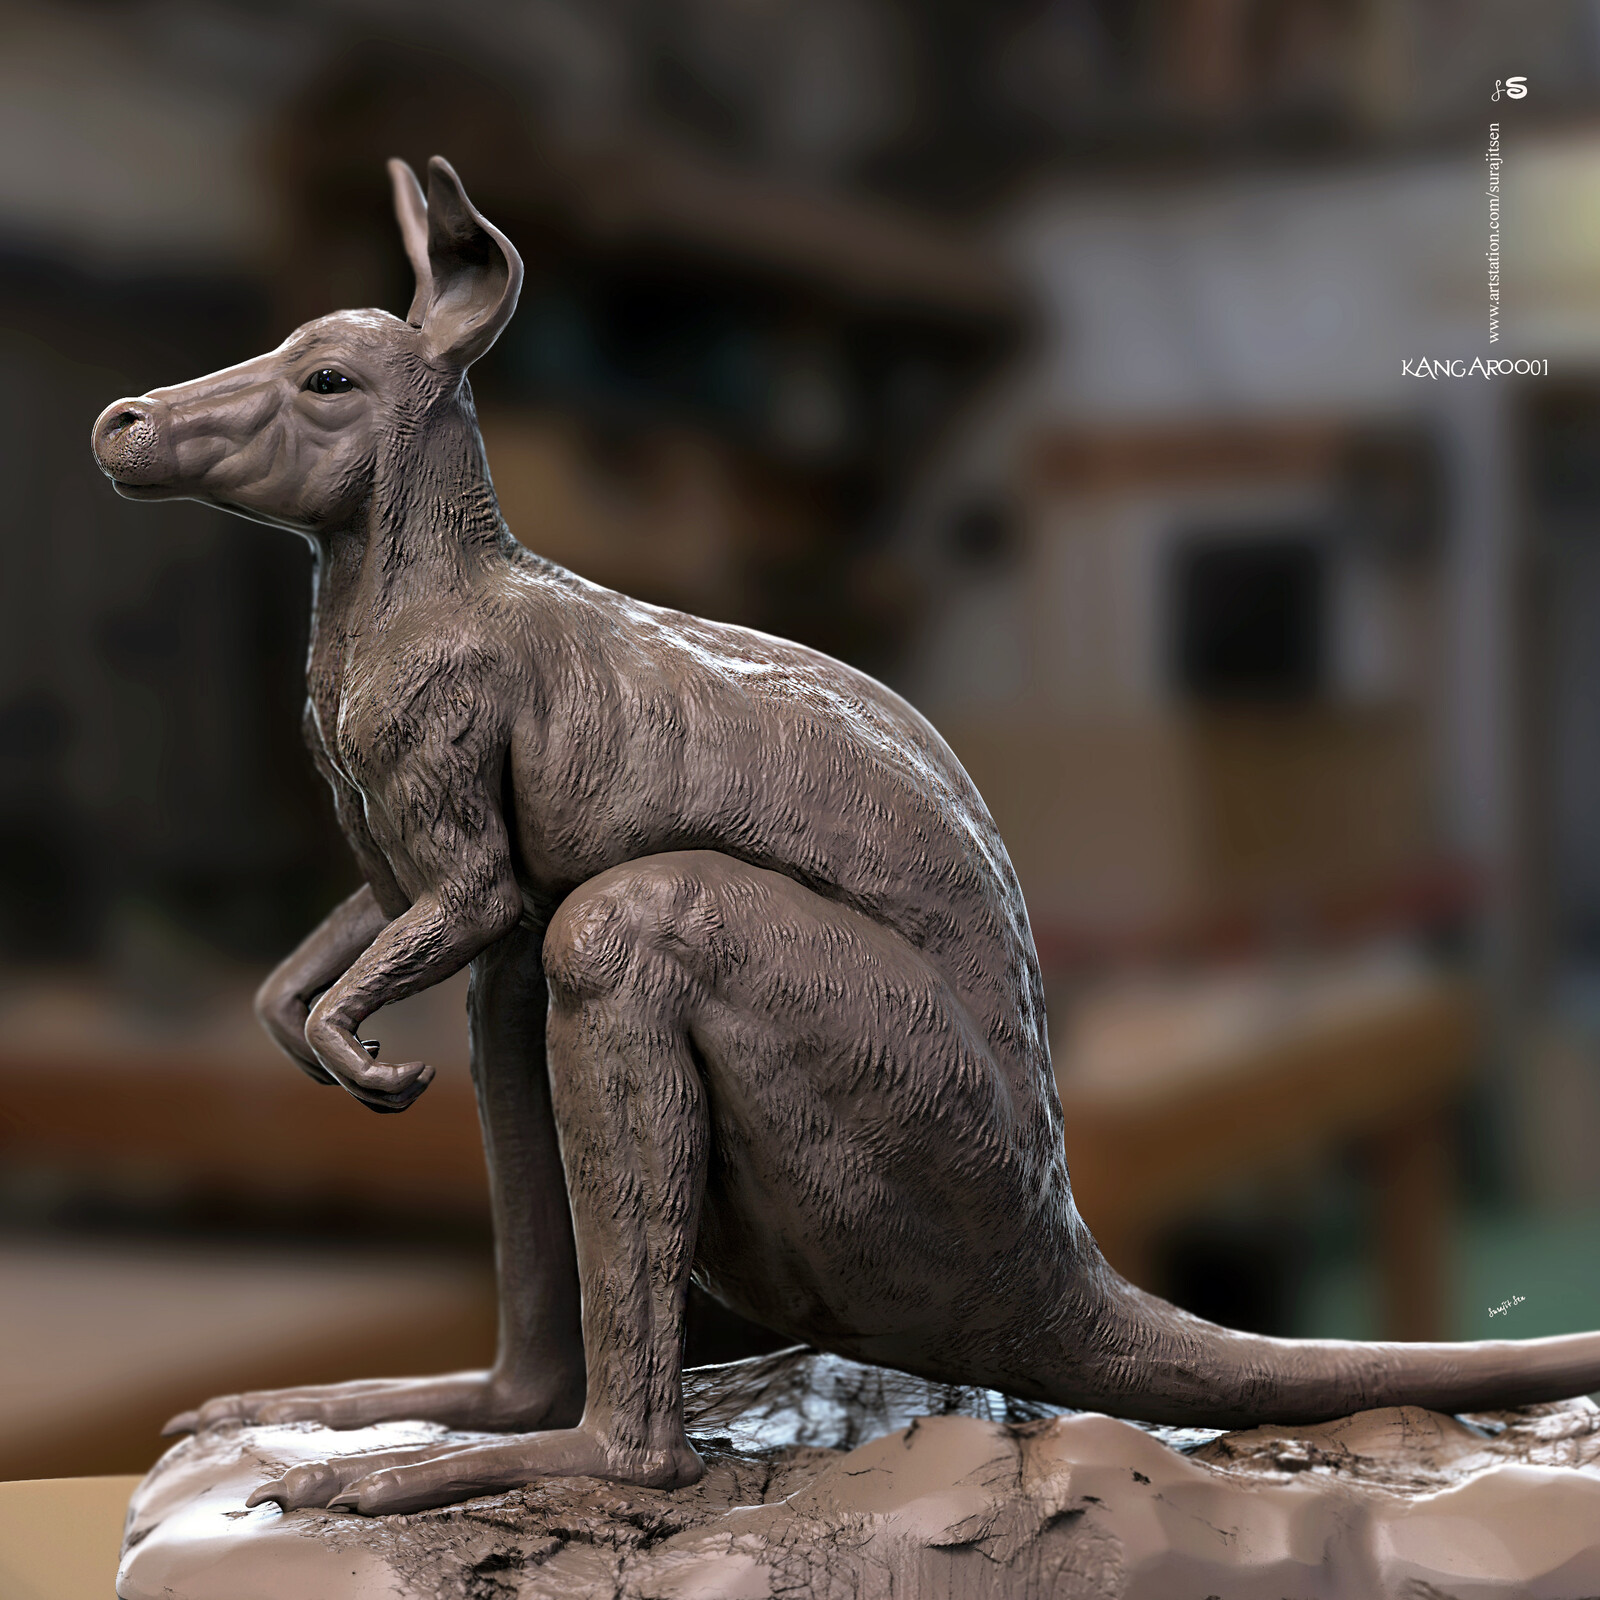 Today found one of my old Sculpting study works....Kangaroo01 Fixed some issues...resculpting and wish to share a snap. Hope you like it....😊